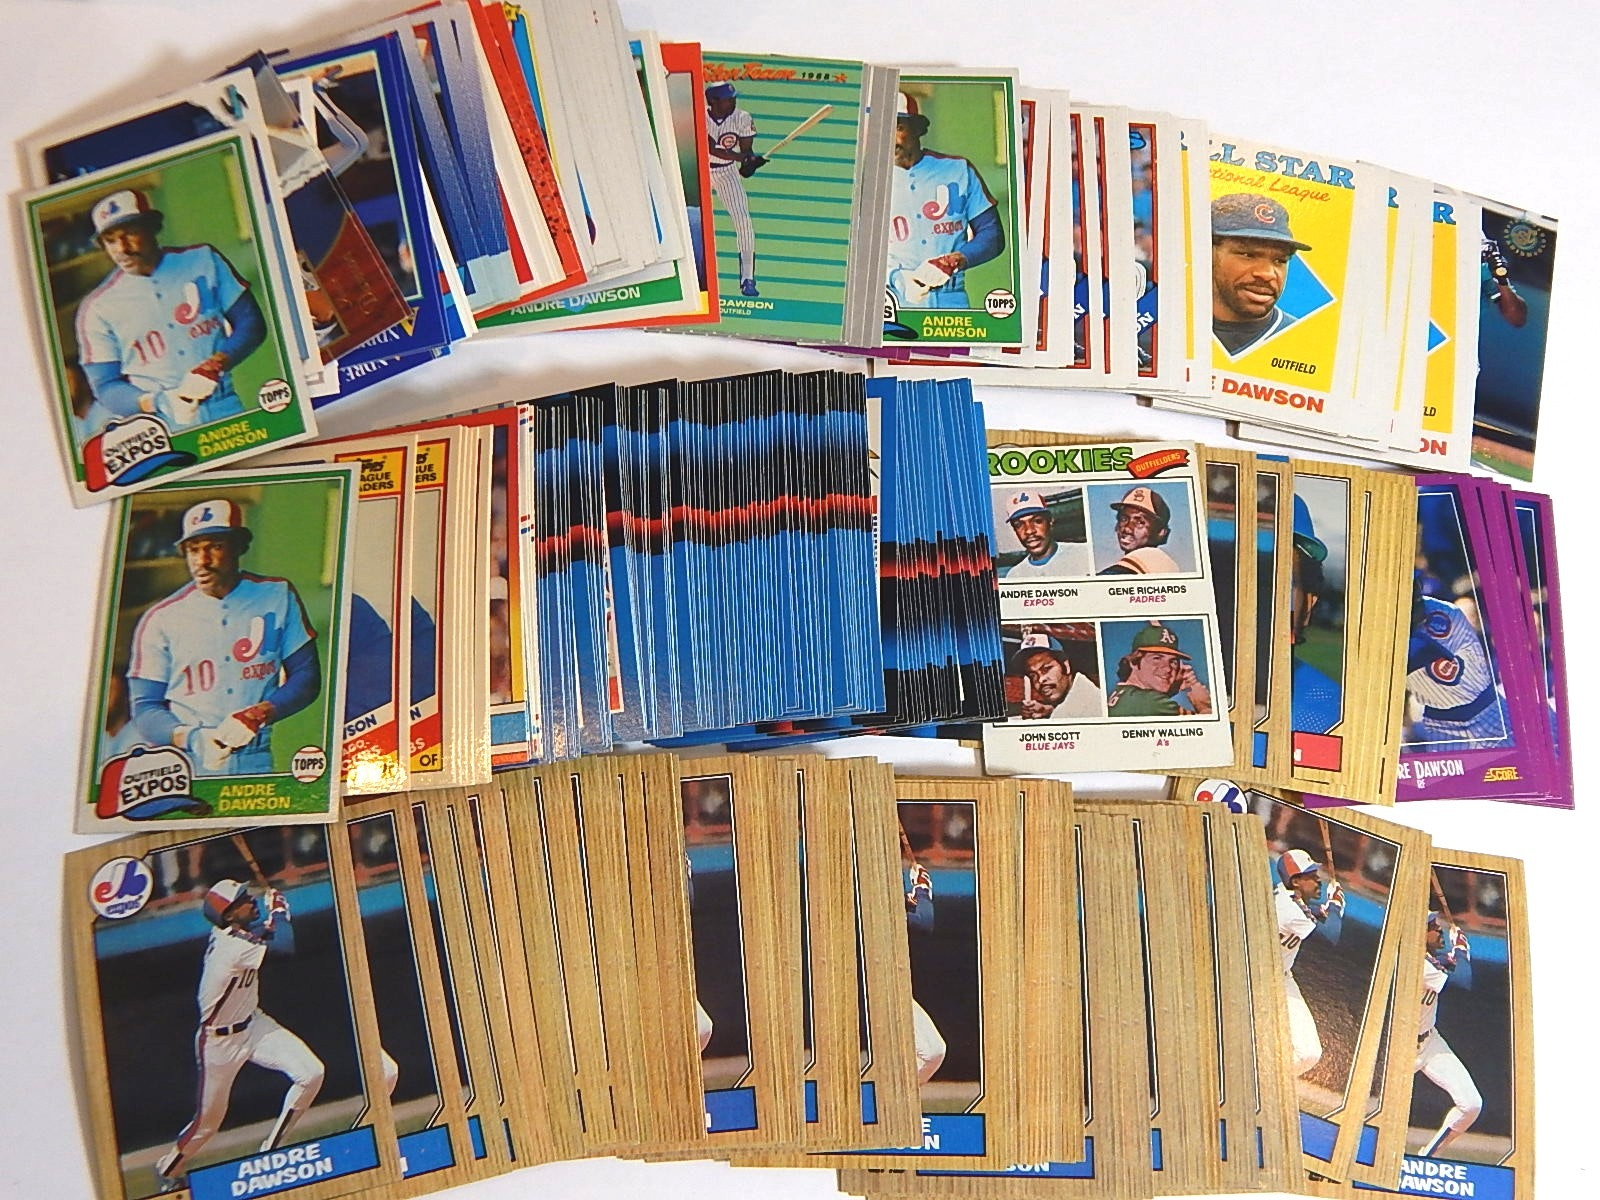 Around 300 HOF Andre Dawson Baseball Cards with 1977 Rookie Card #473